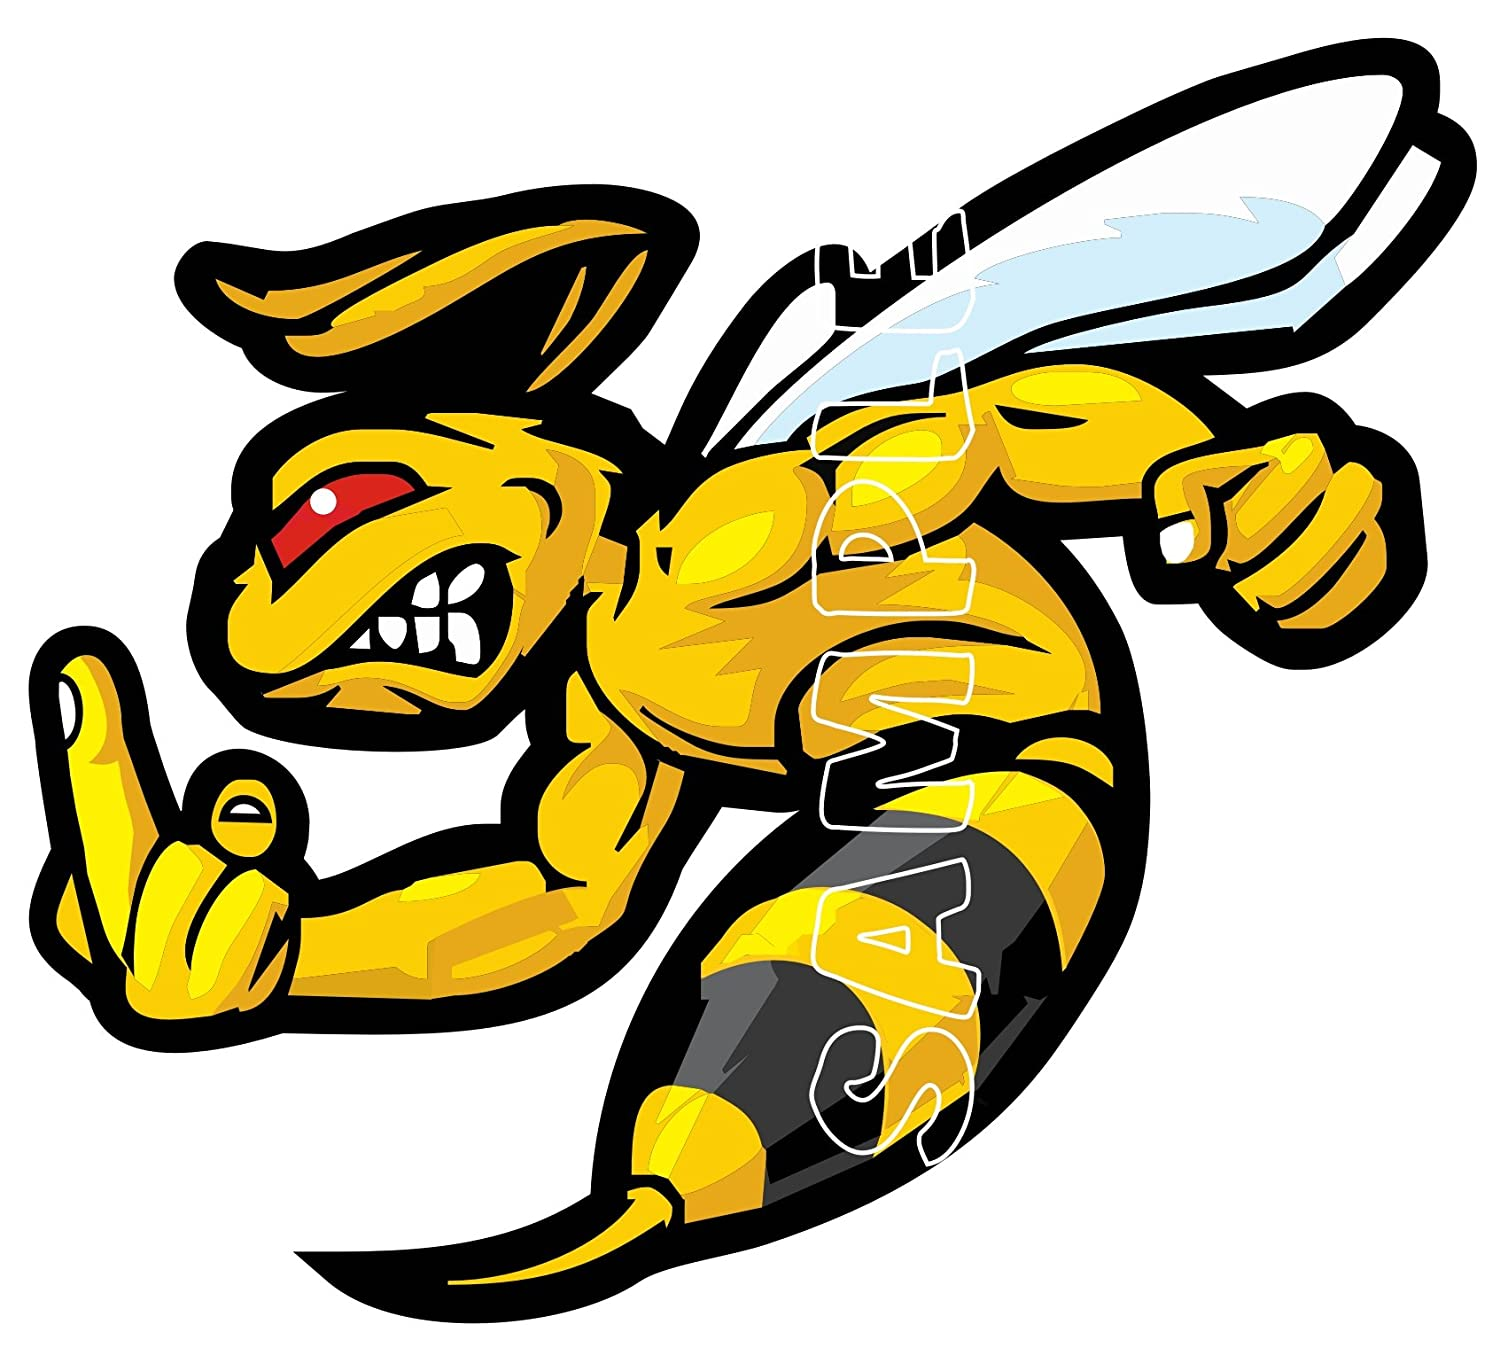 90MM SCOOTER MODS THE FINGER WASP HELMET STICKER DECAL use on Motorbikes, Mopeds, Helmet, Legshied. IPoppinshop